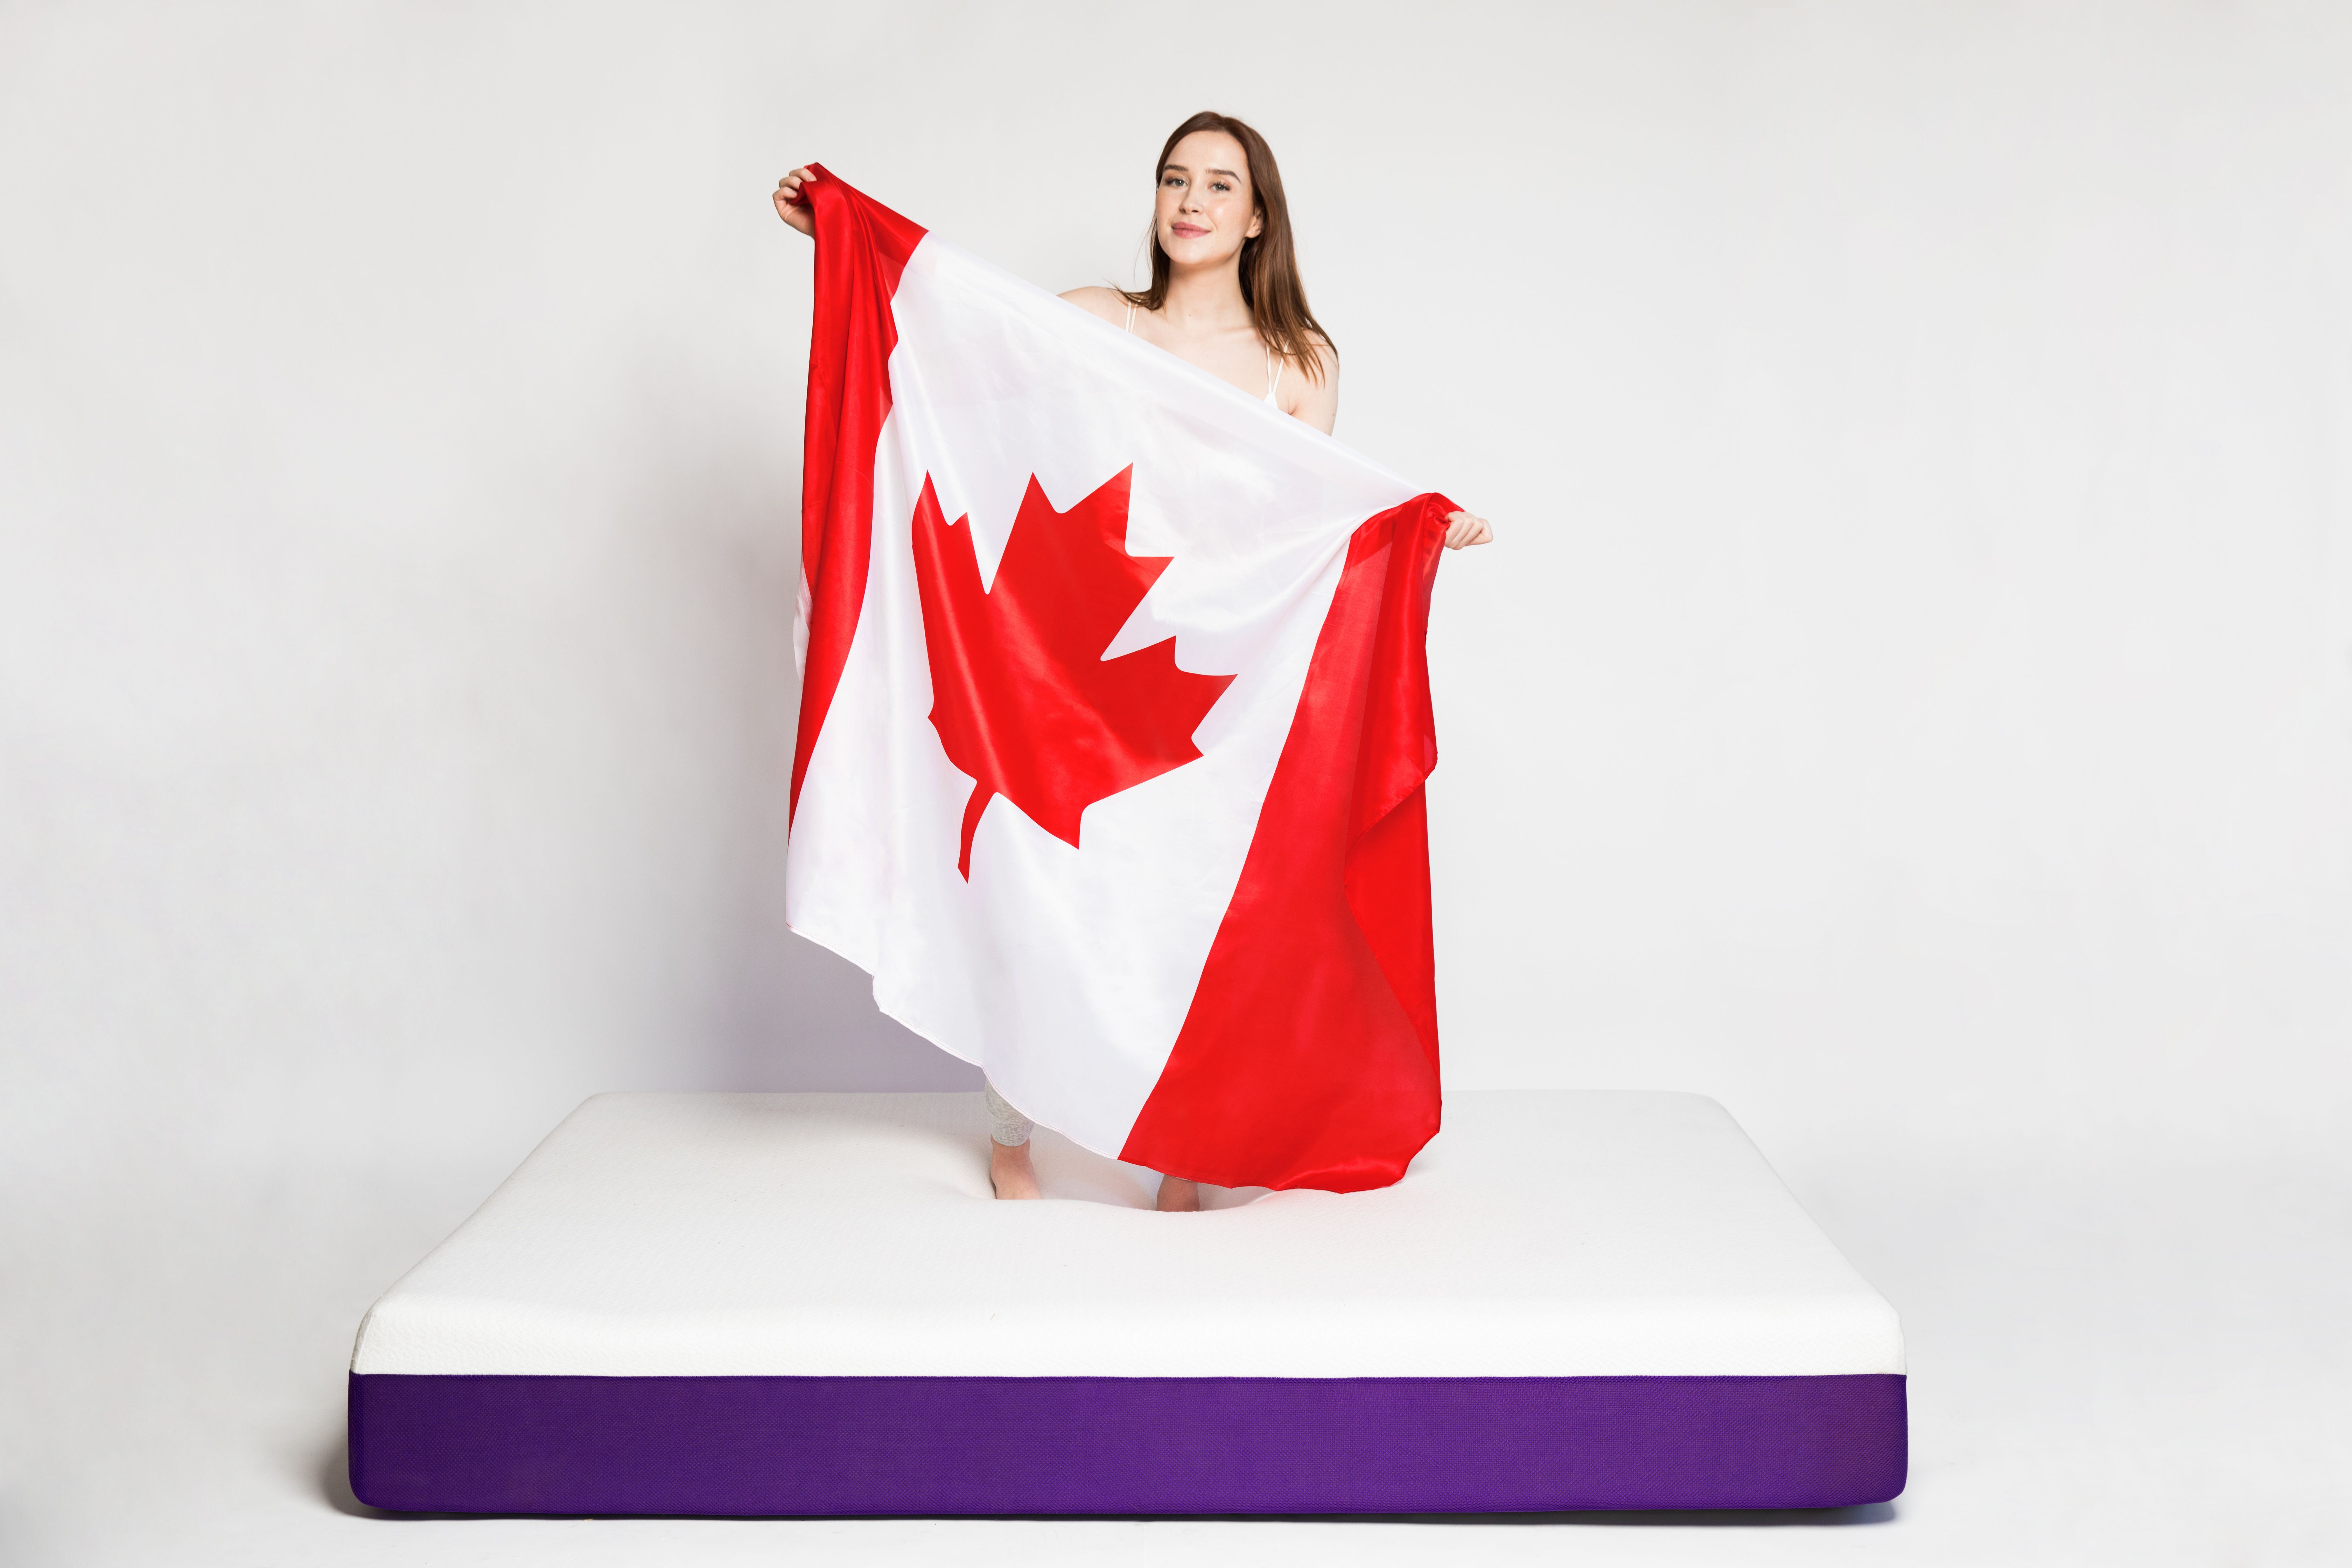 100 Made in Canada Best mattress, How to make, The 100